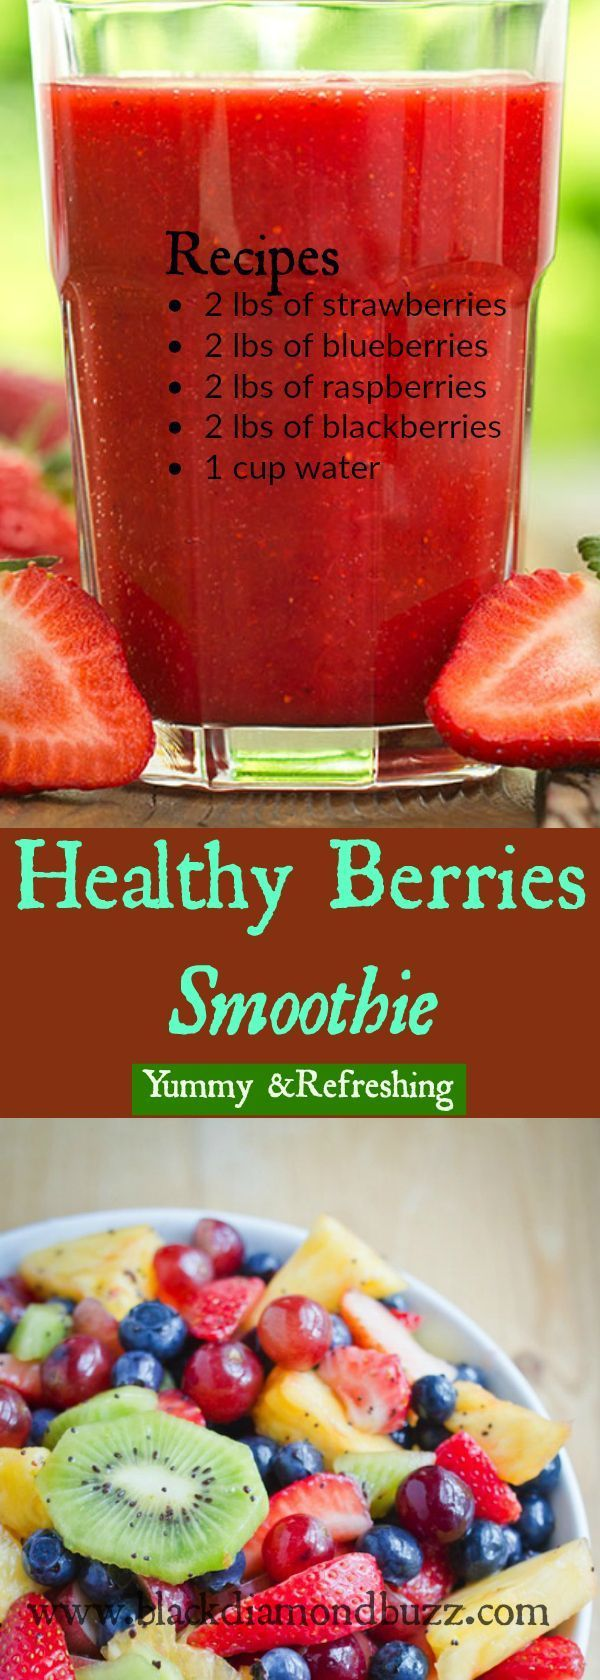 Healthy Berries Smoothie. How to make berry smoothies easily .Yummy and Refreshing! Your family will love it!  Recipes •	2 lbs of strawberries •	2 lbs of blueberries •	2 lbs of raspberries •	2 lbs of blackberries •	1 cup water